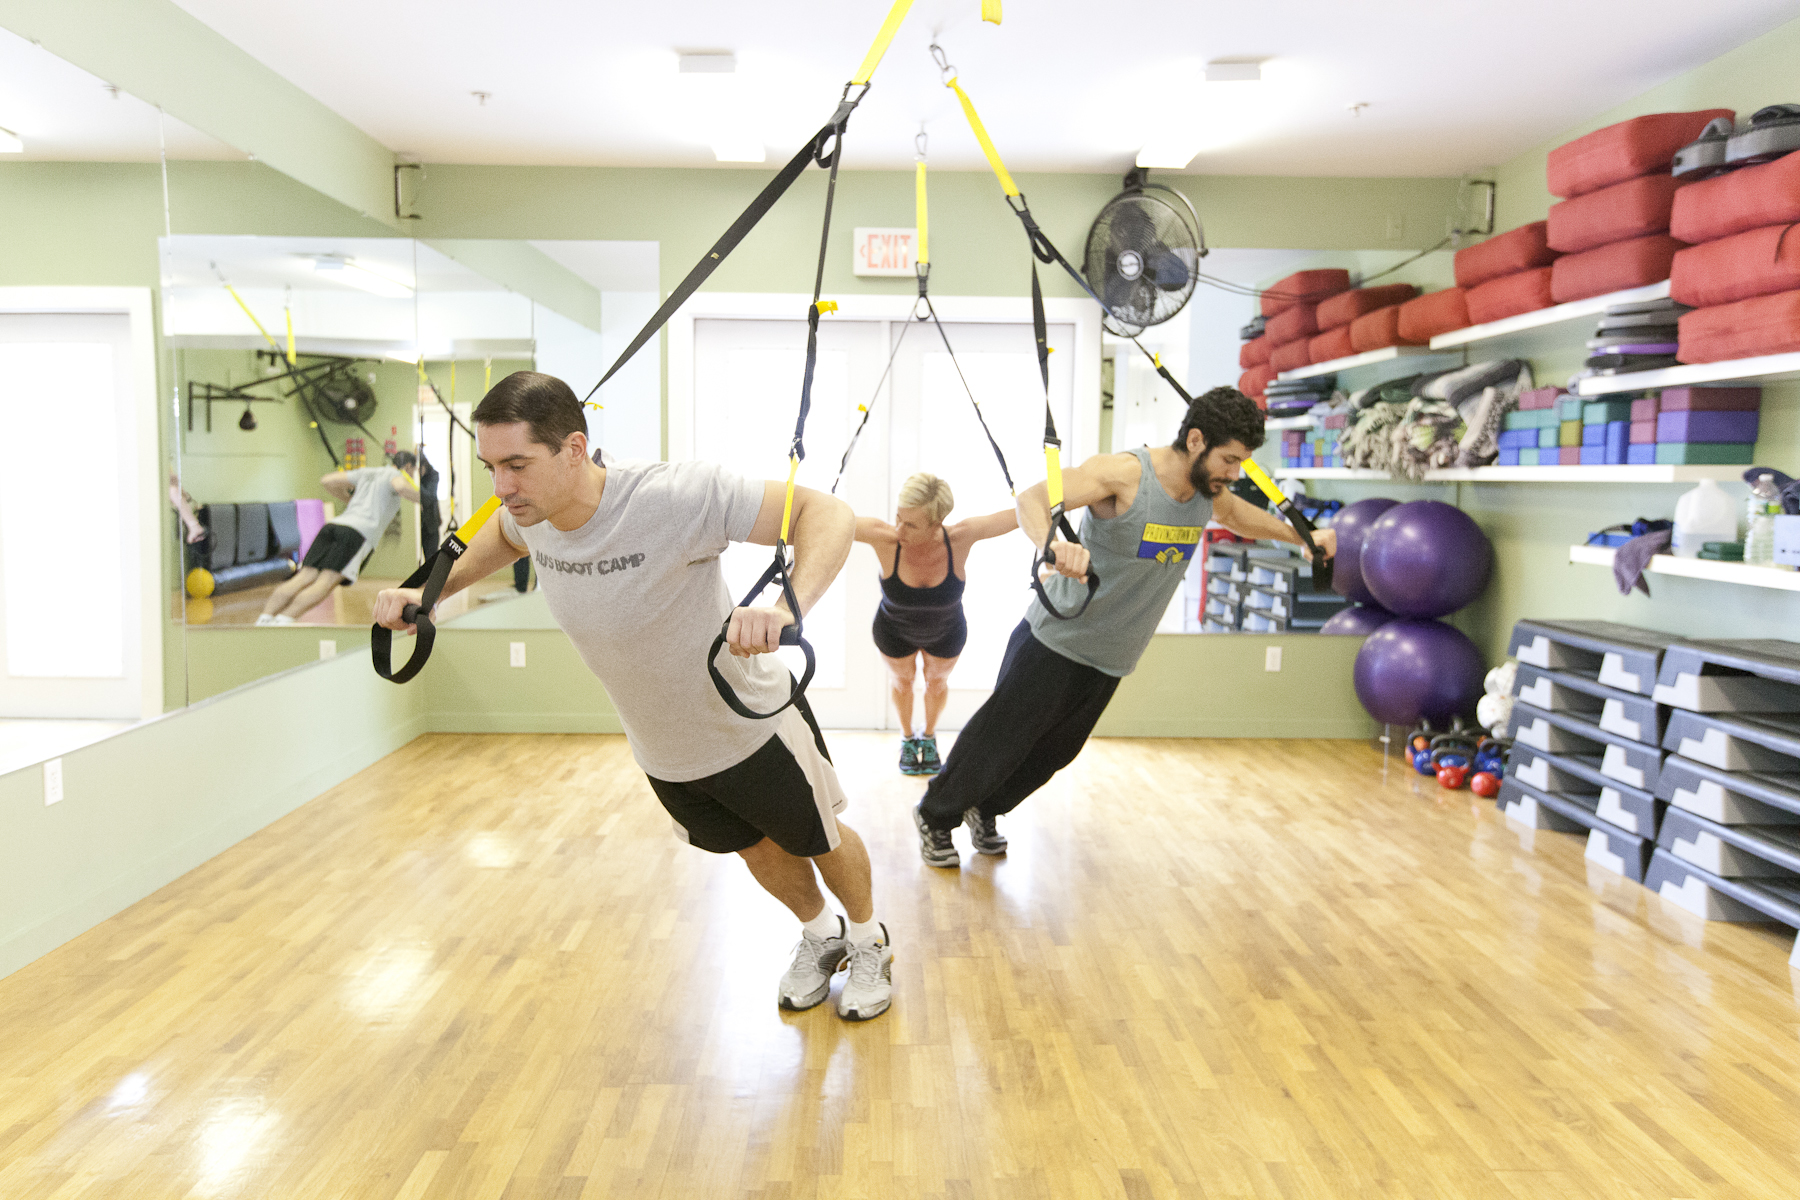 TRX CLASSES